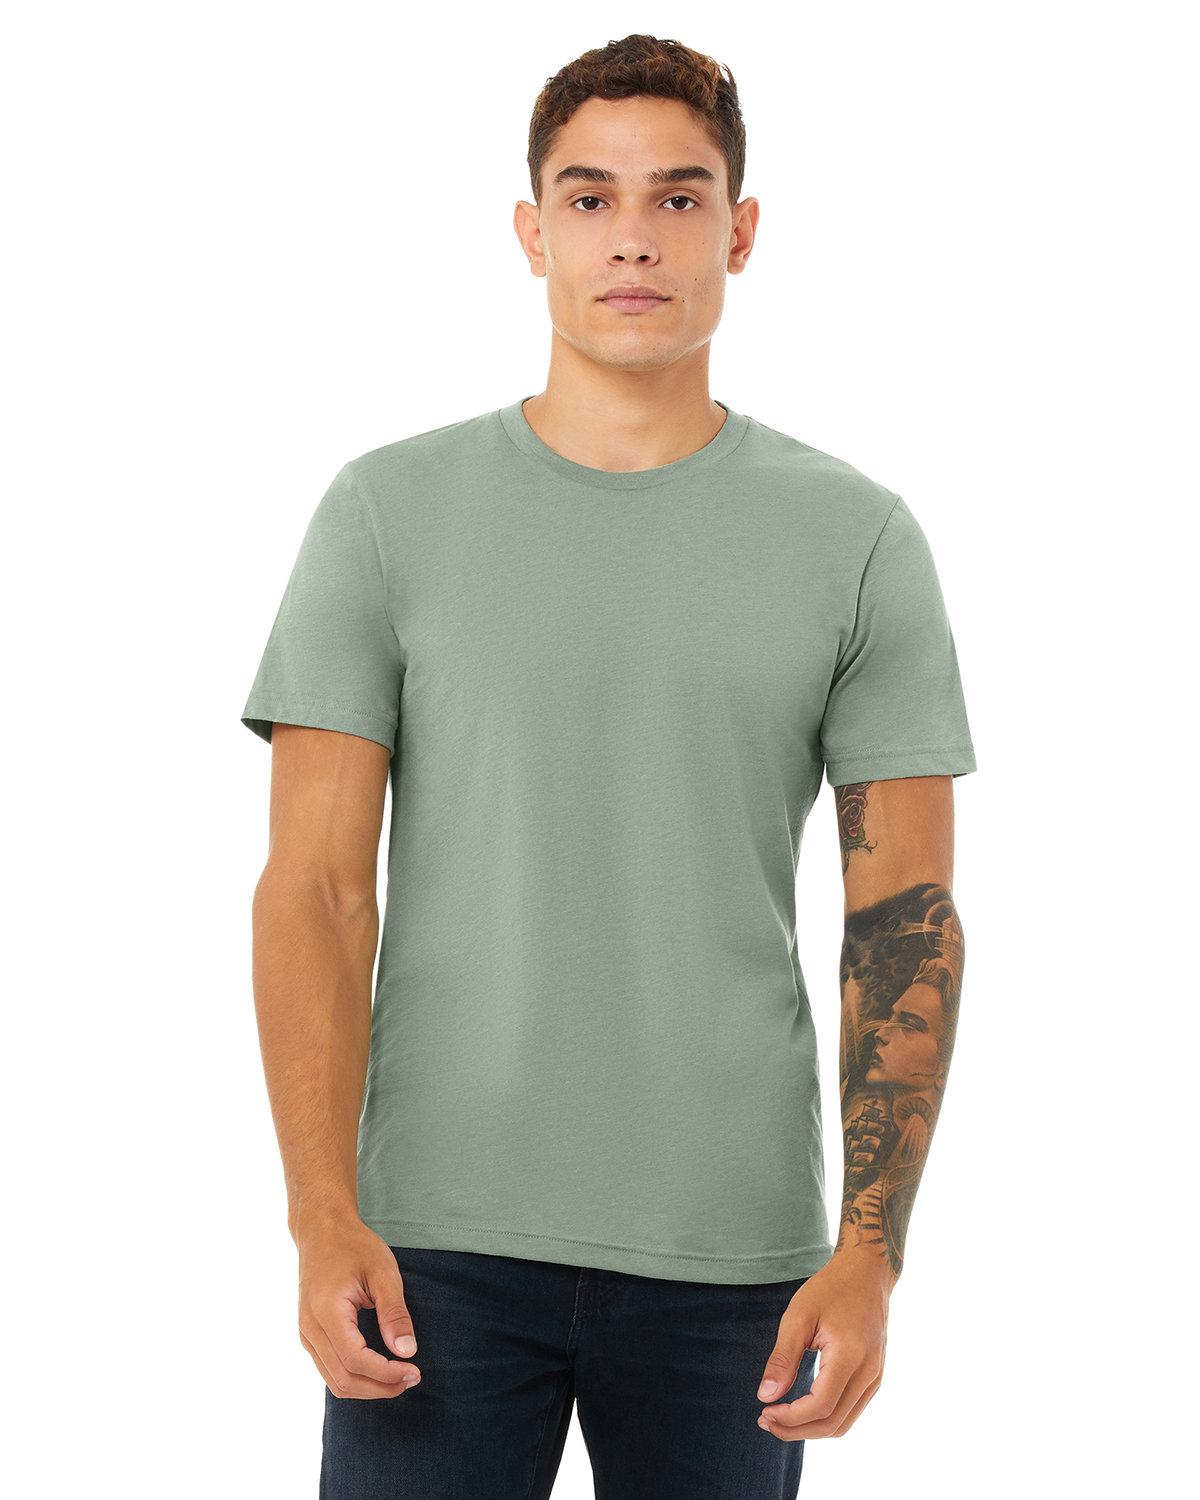 Bella + Canvas Unisex Heather CVC T-Shirt HEATHER SAGE